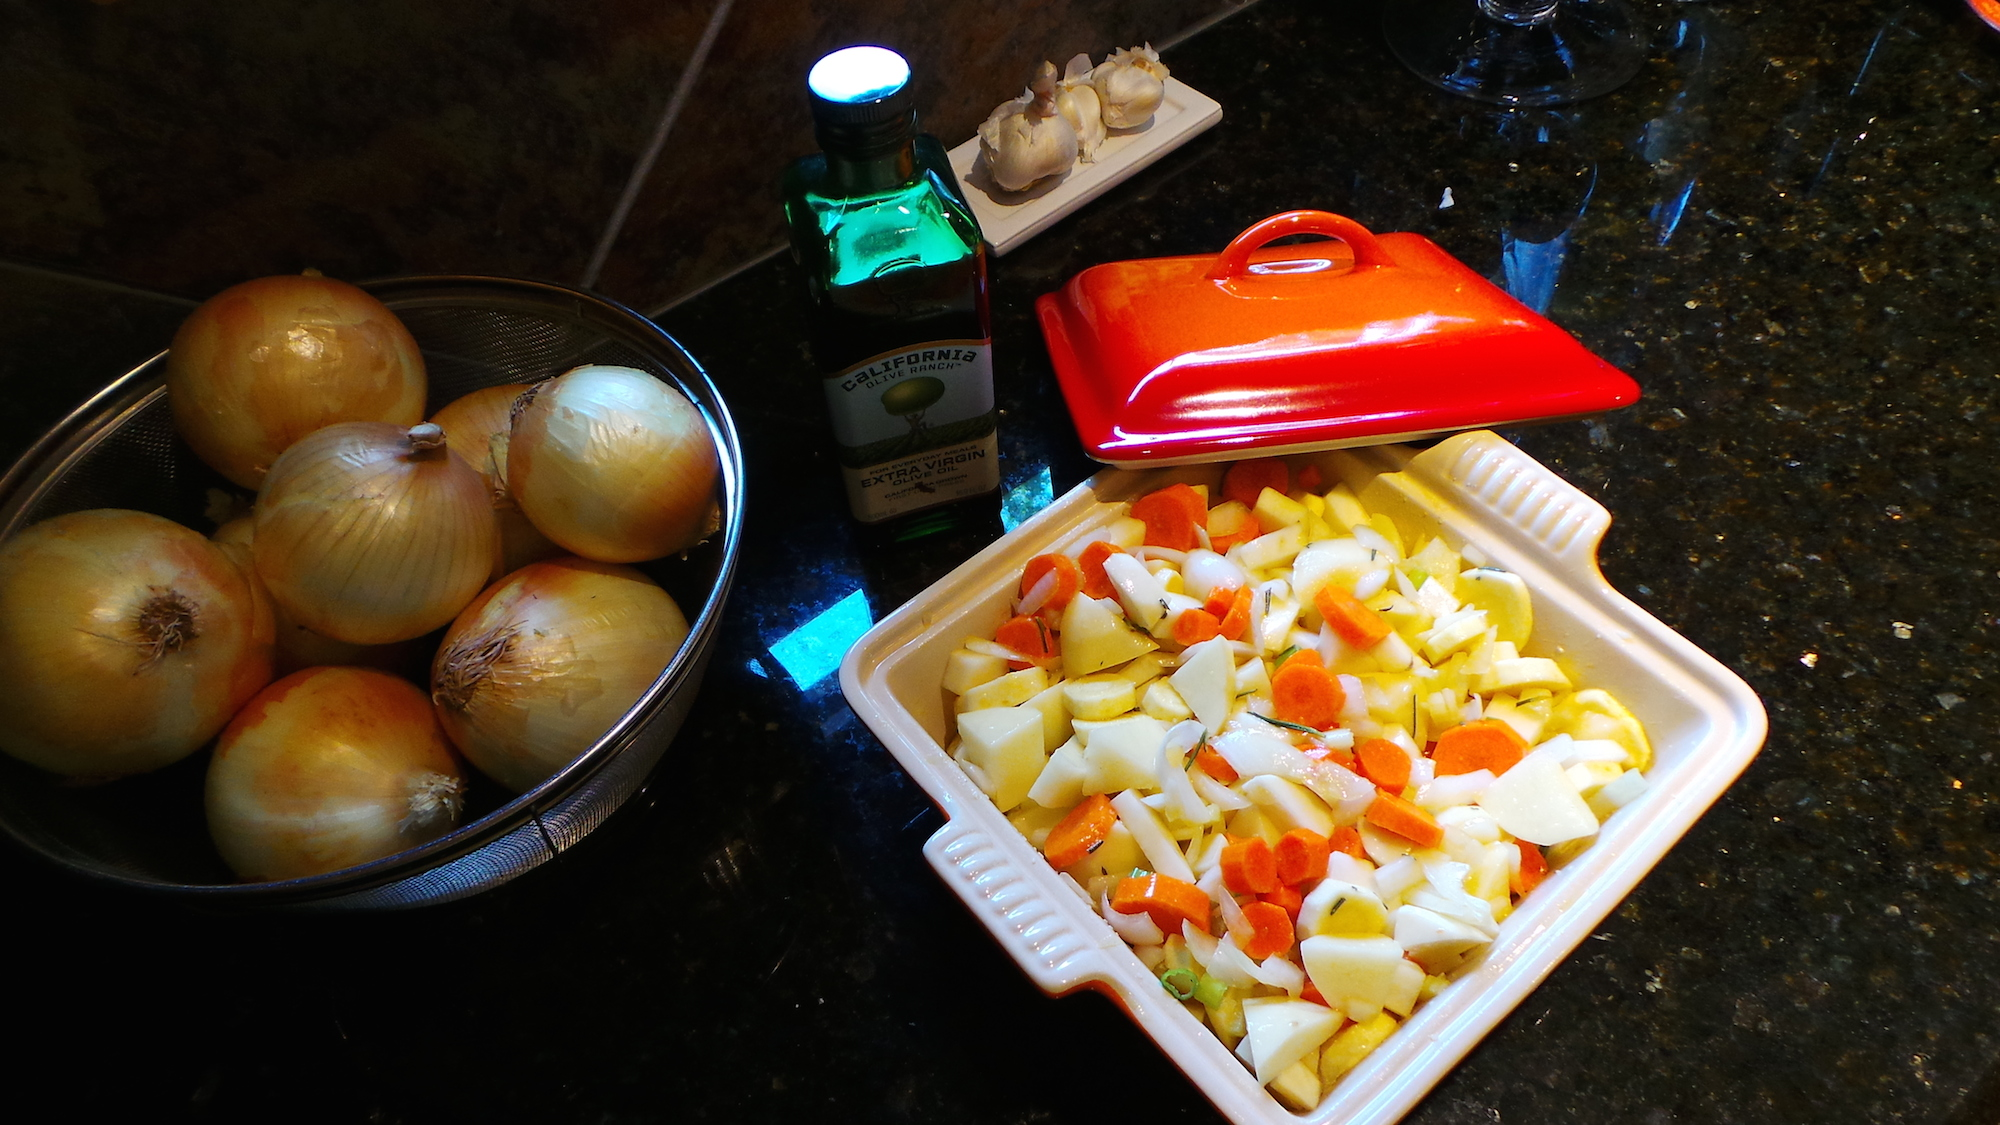 Slow-Roasted Vegetables and French Onion Soup